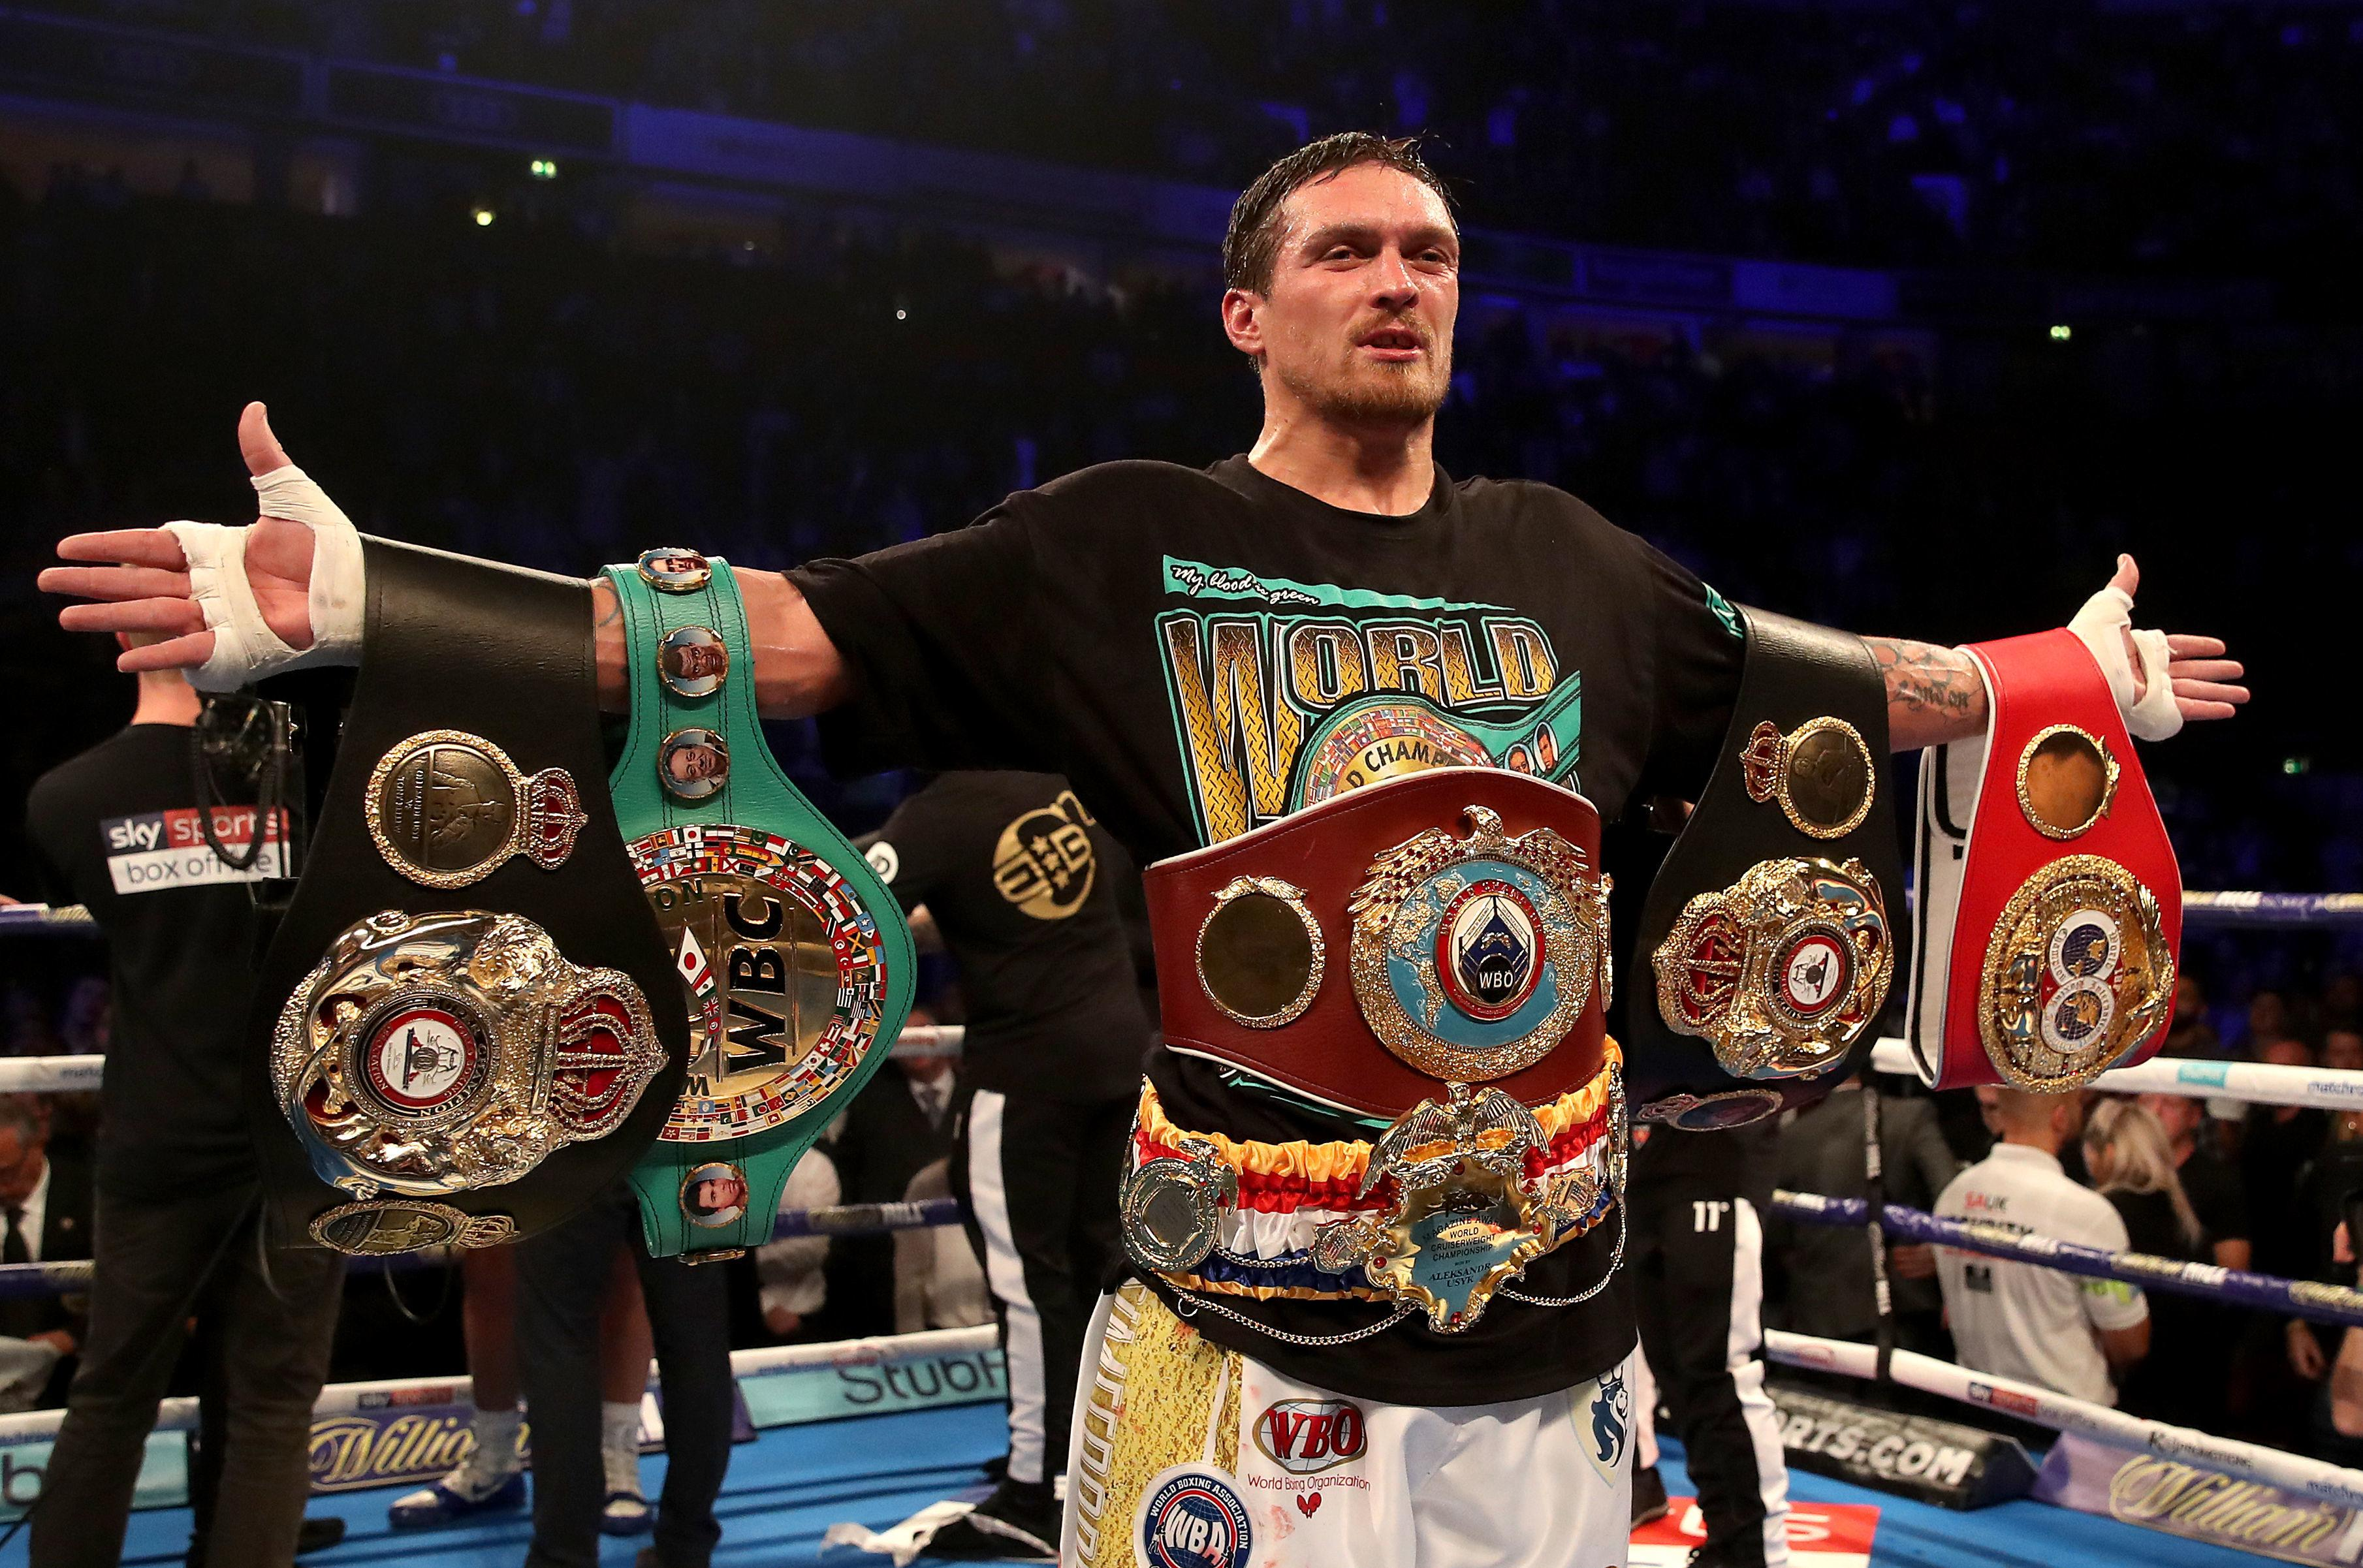 Usyk is the current undisputed cruiserweight world champion, but he admitted a move up to heavyweight is the plan